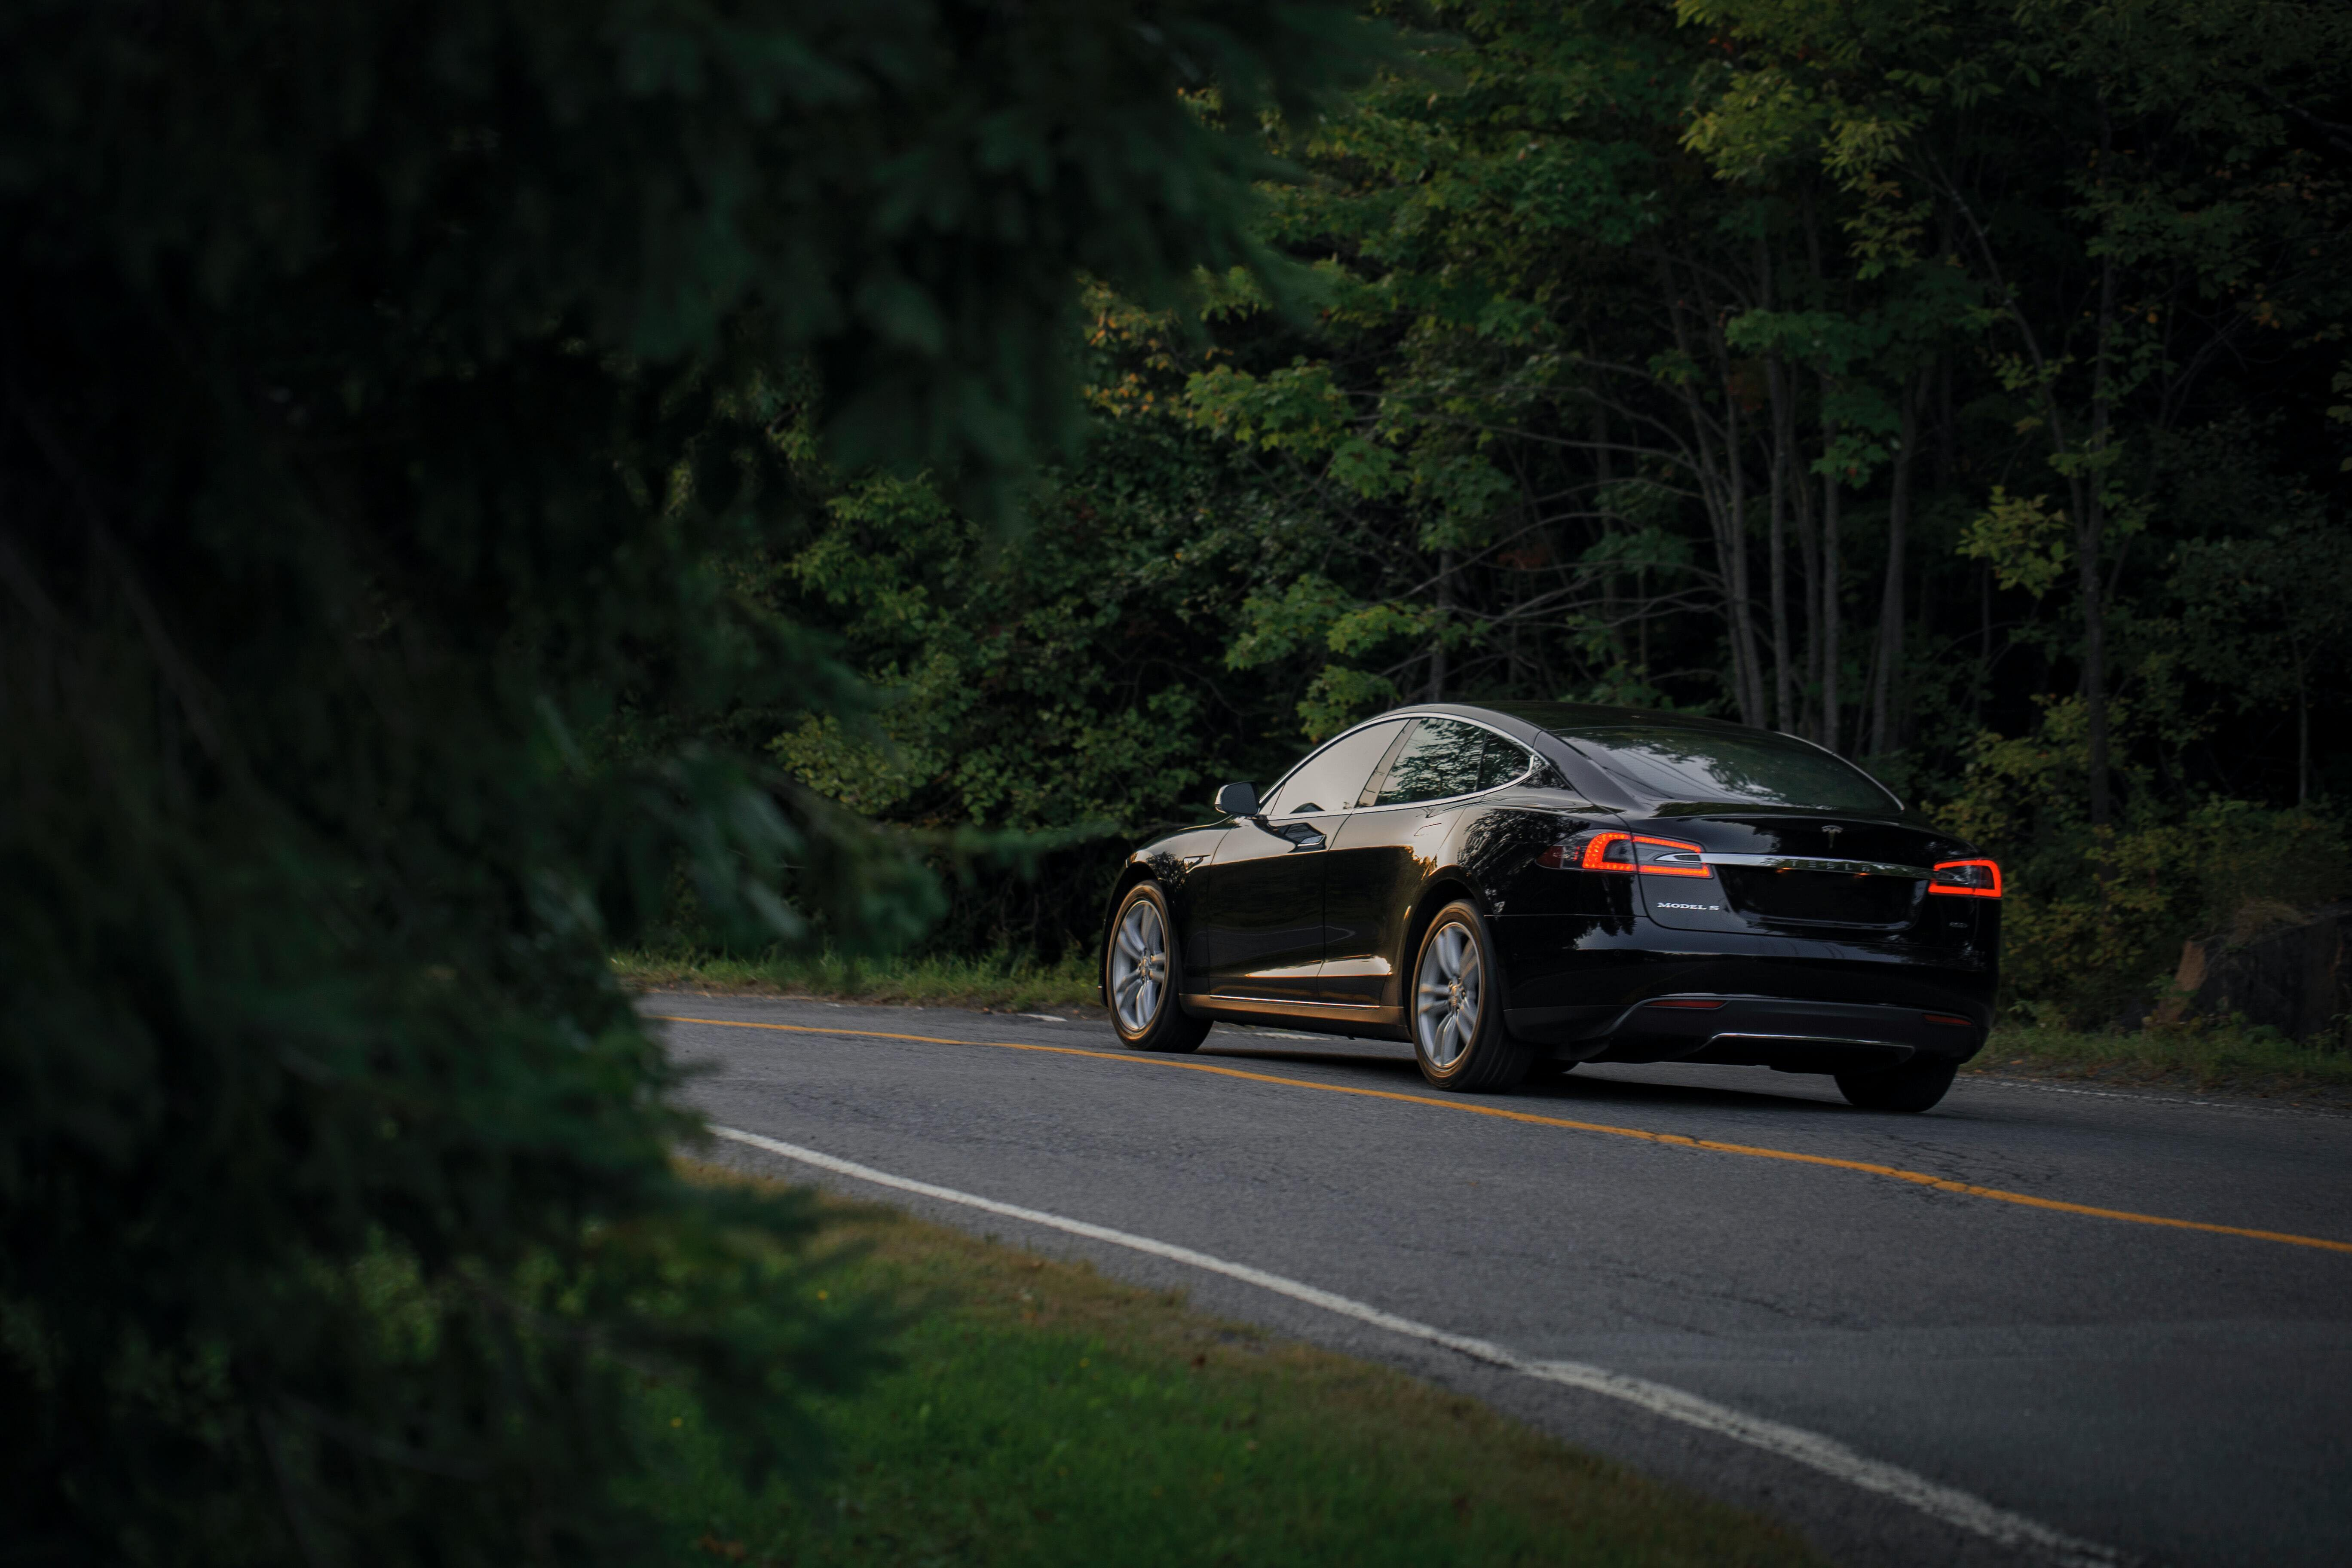 An EV driving on a road in the middle of a forest